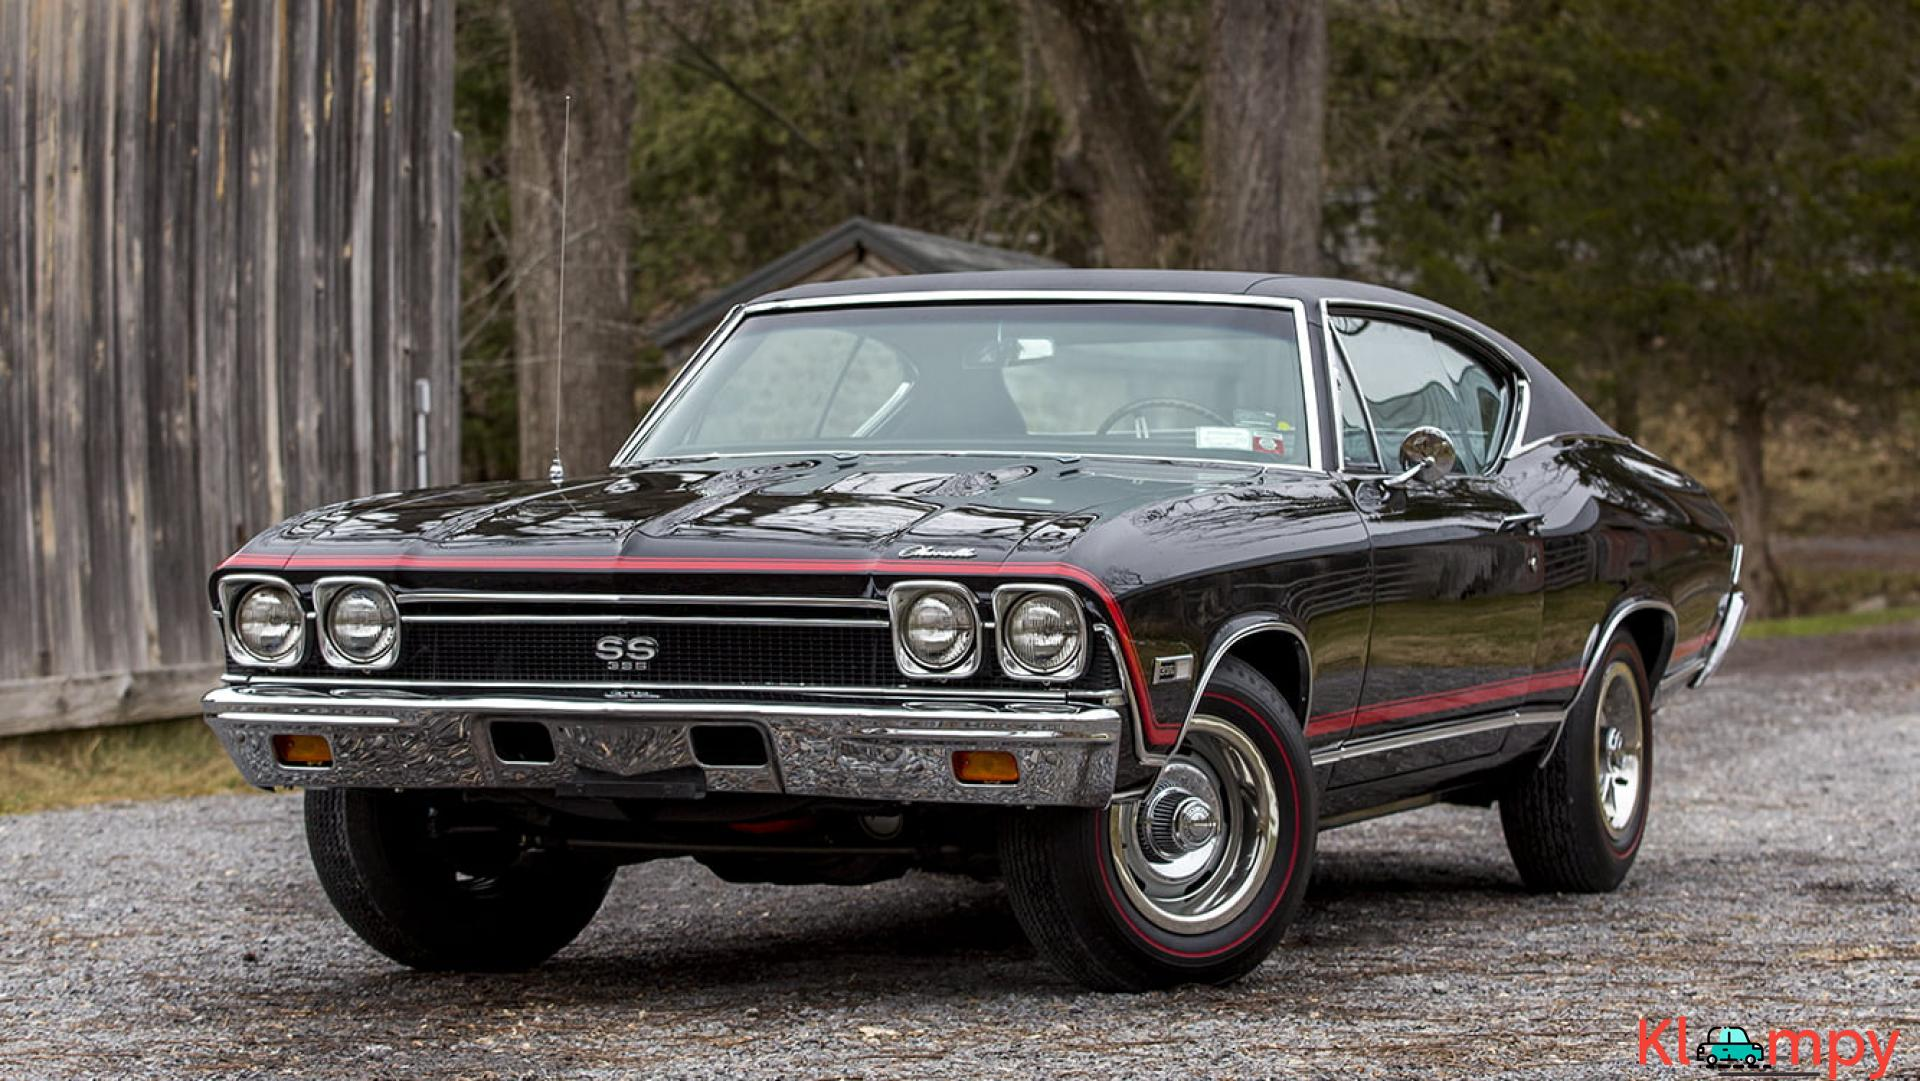 1968 Chevrolet Chevelle SS 396 Matching Numbers - 2/15